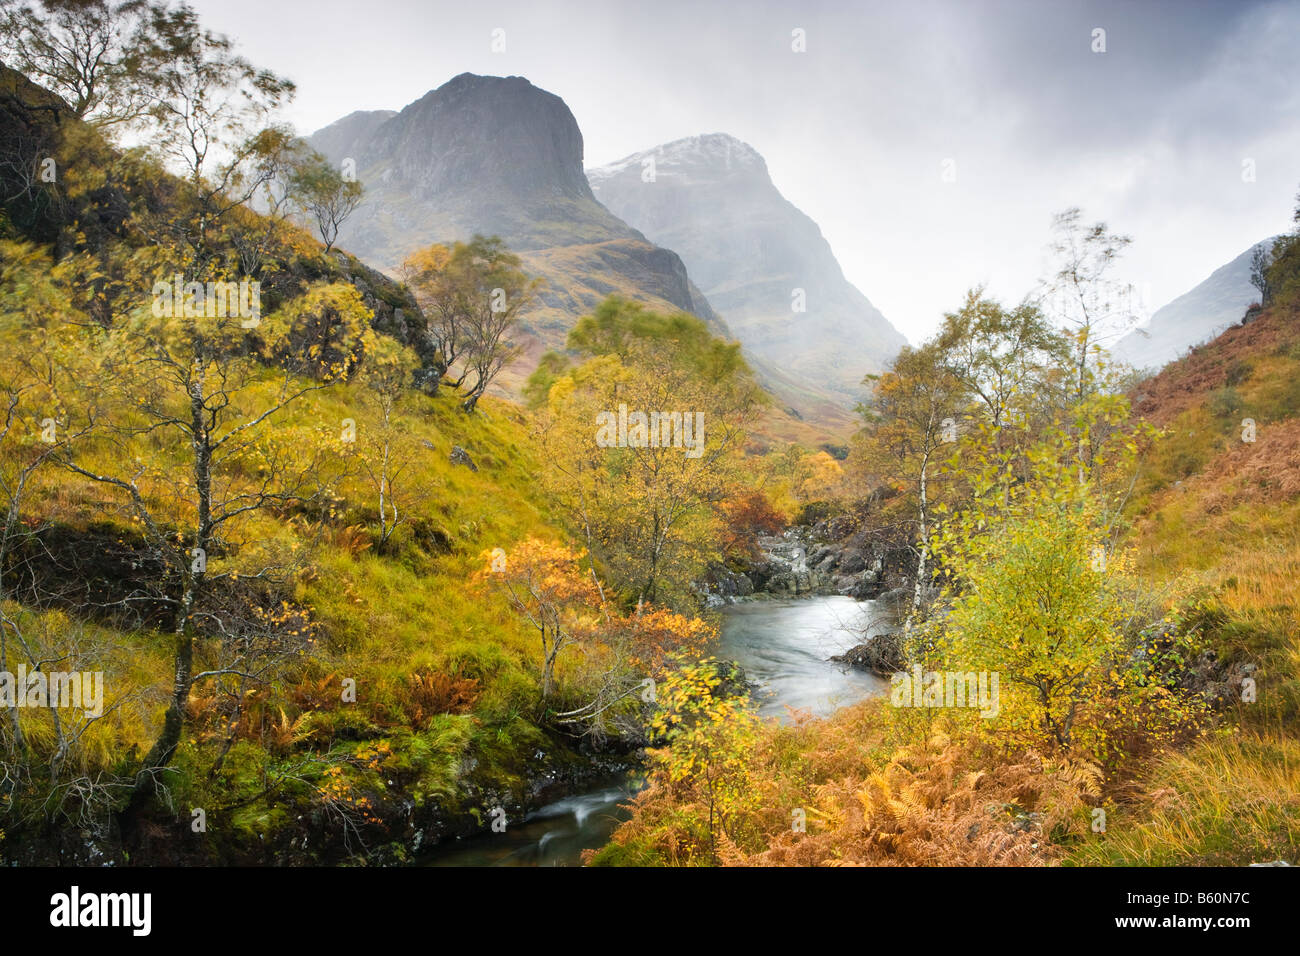 Glen Coe, River Coe, Highland, Scotland, UK - Stock Image